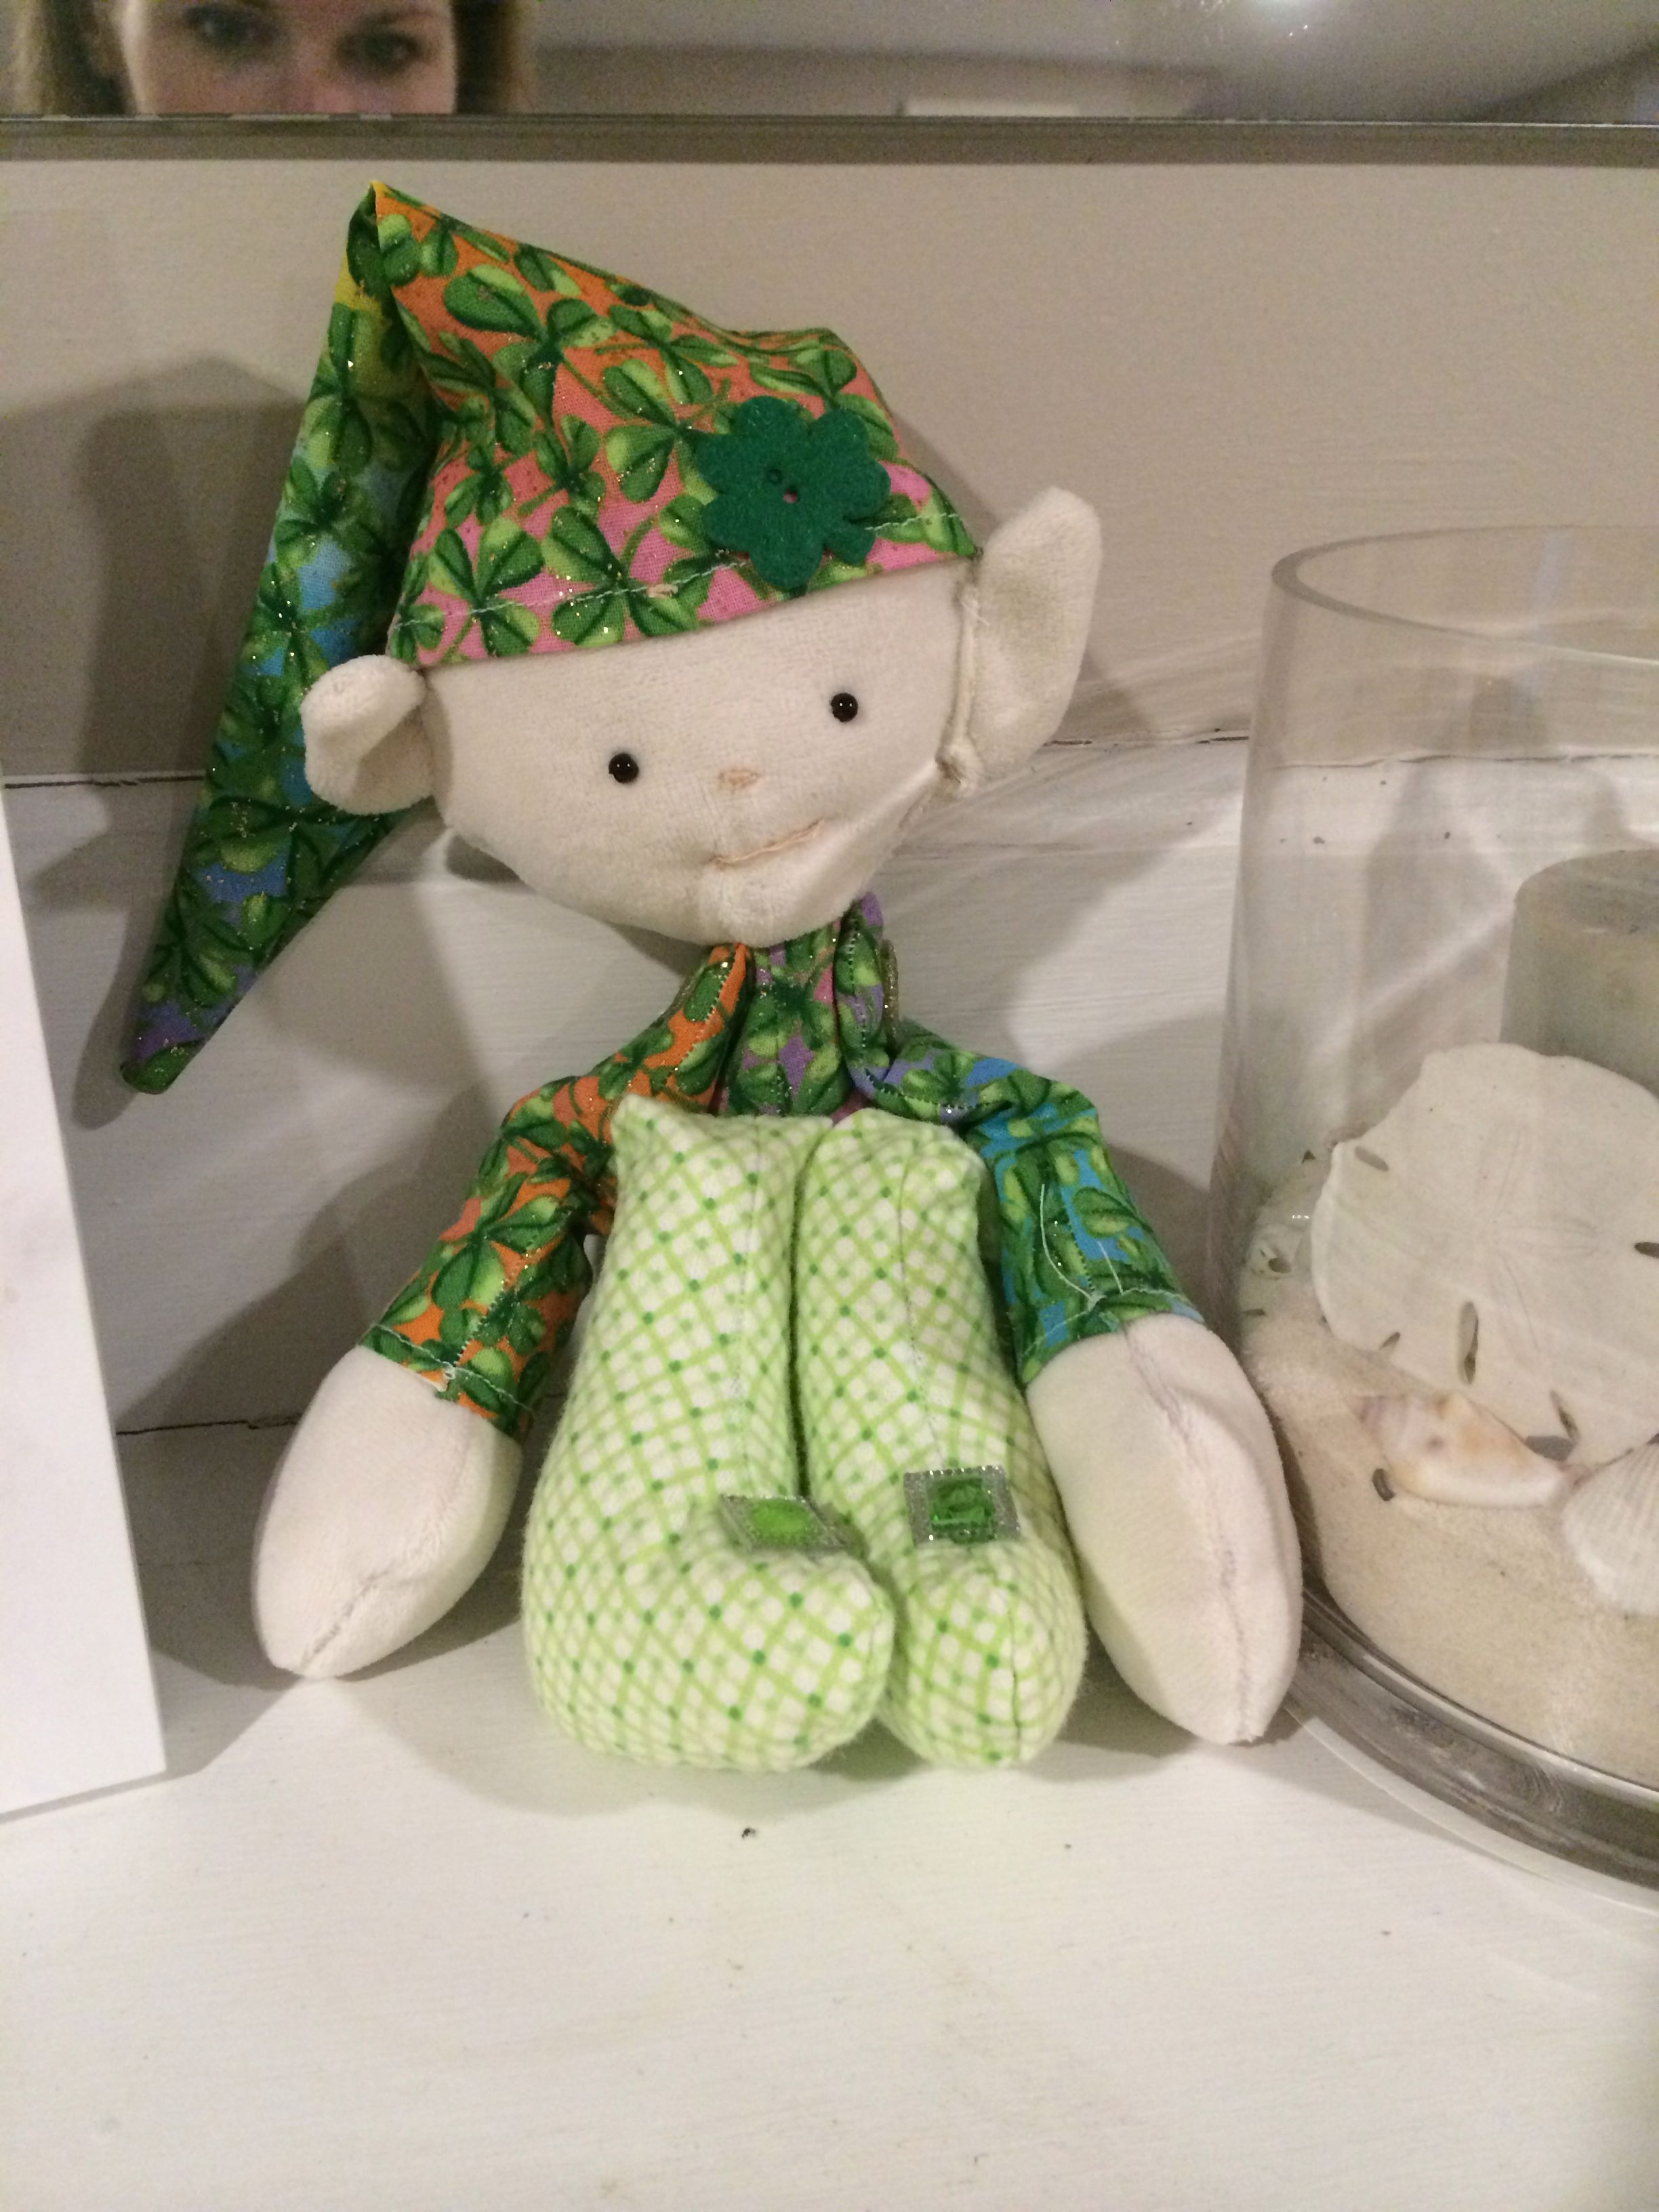 Cute little leprechaun that I made! Adapted a pattern for a little elf that I had.